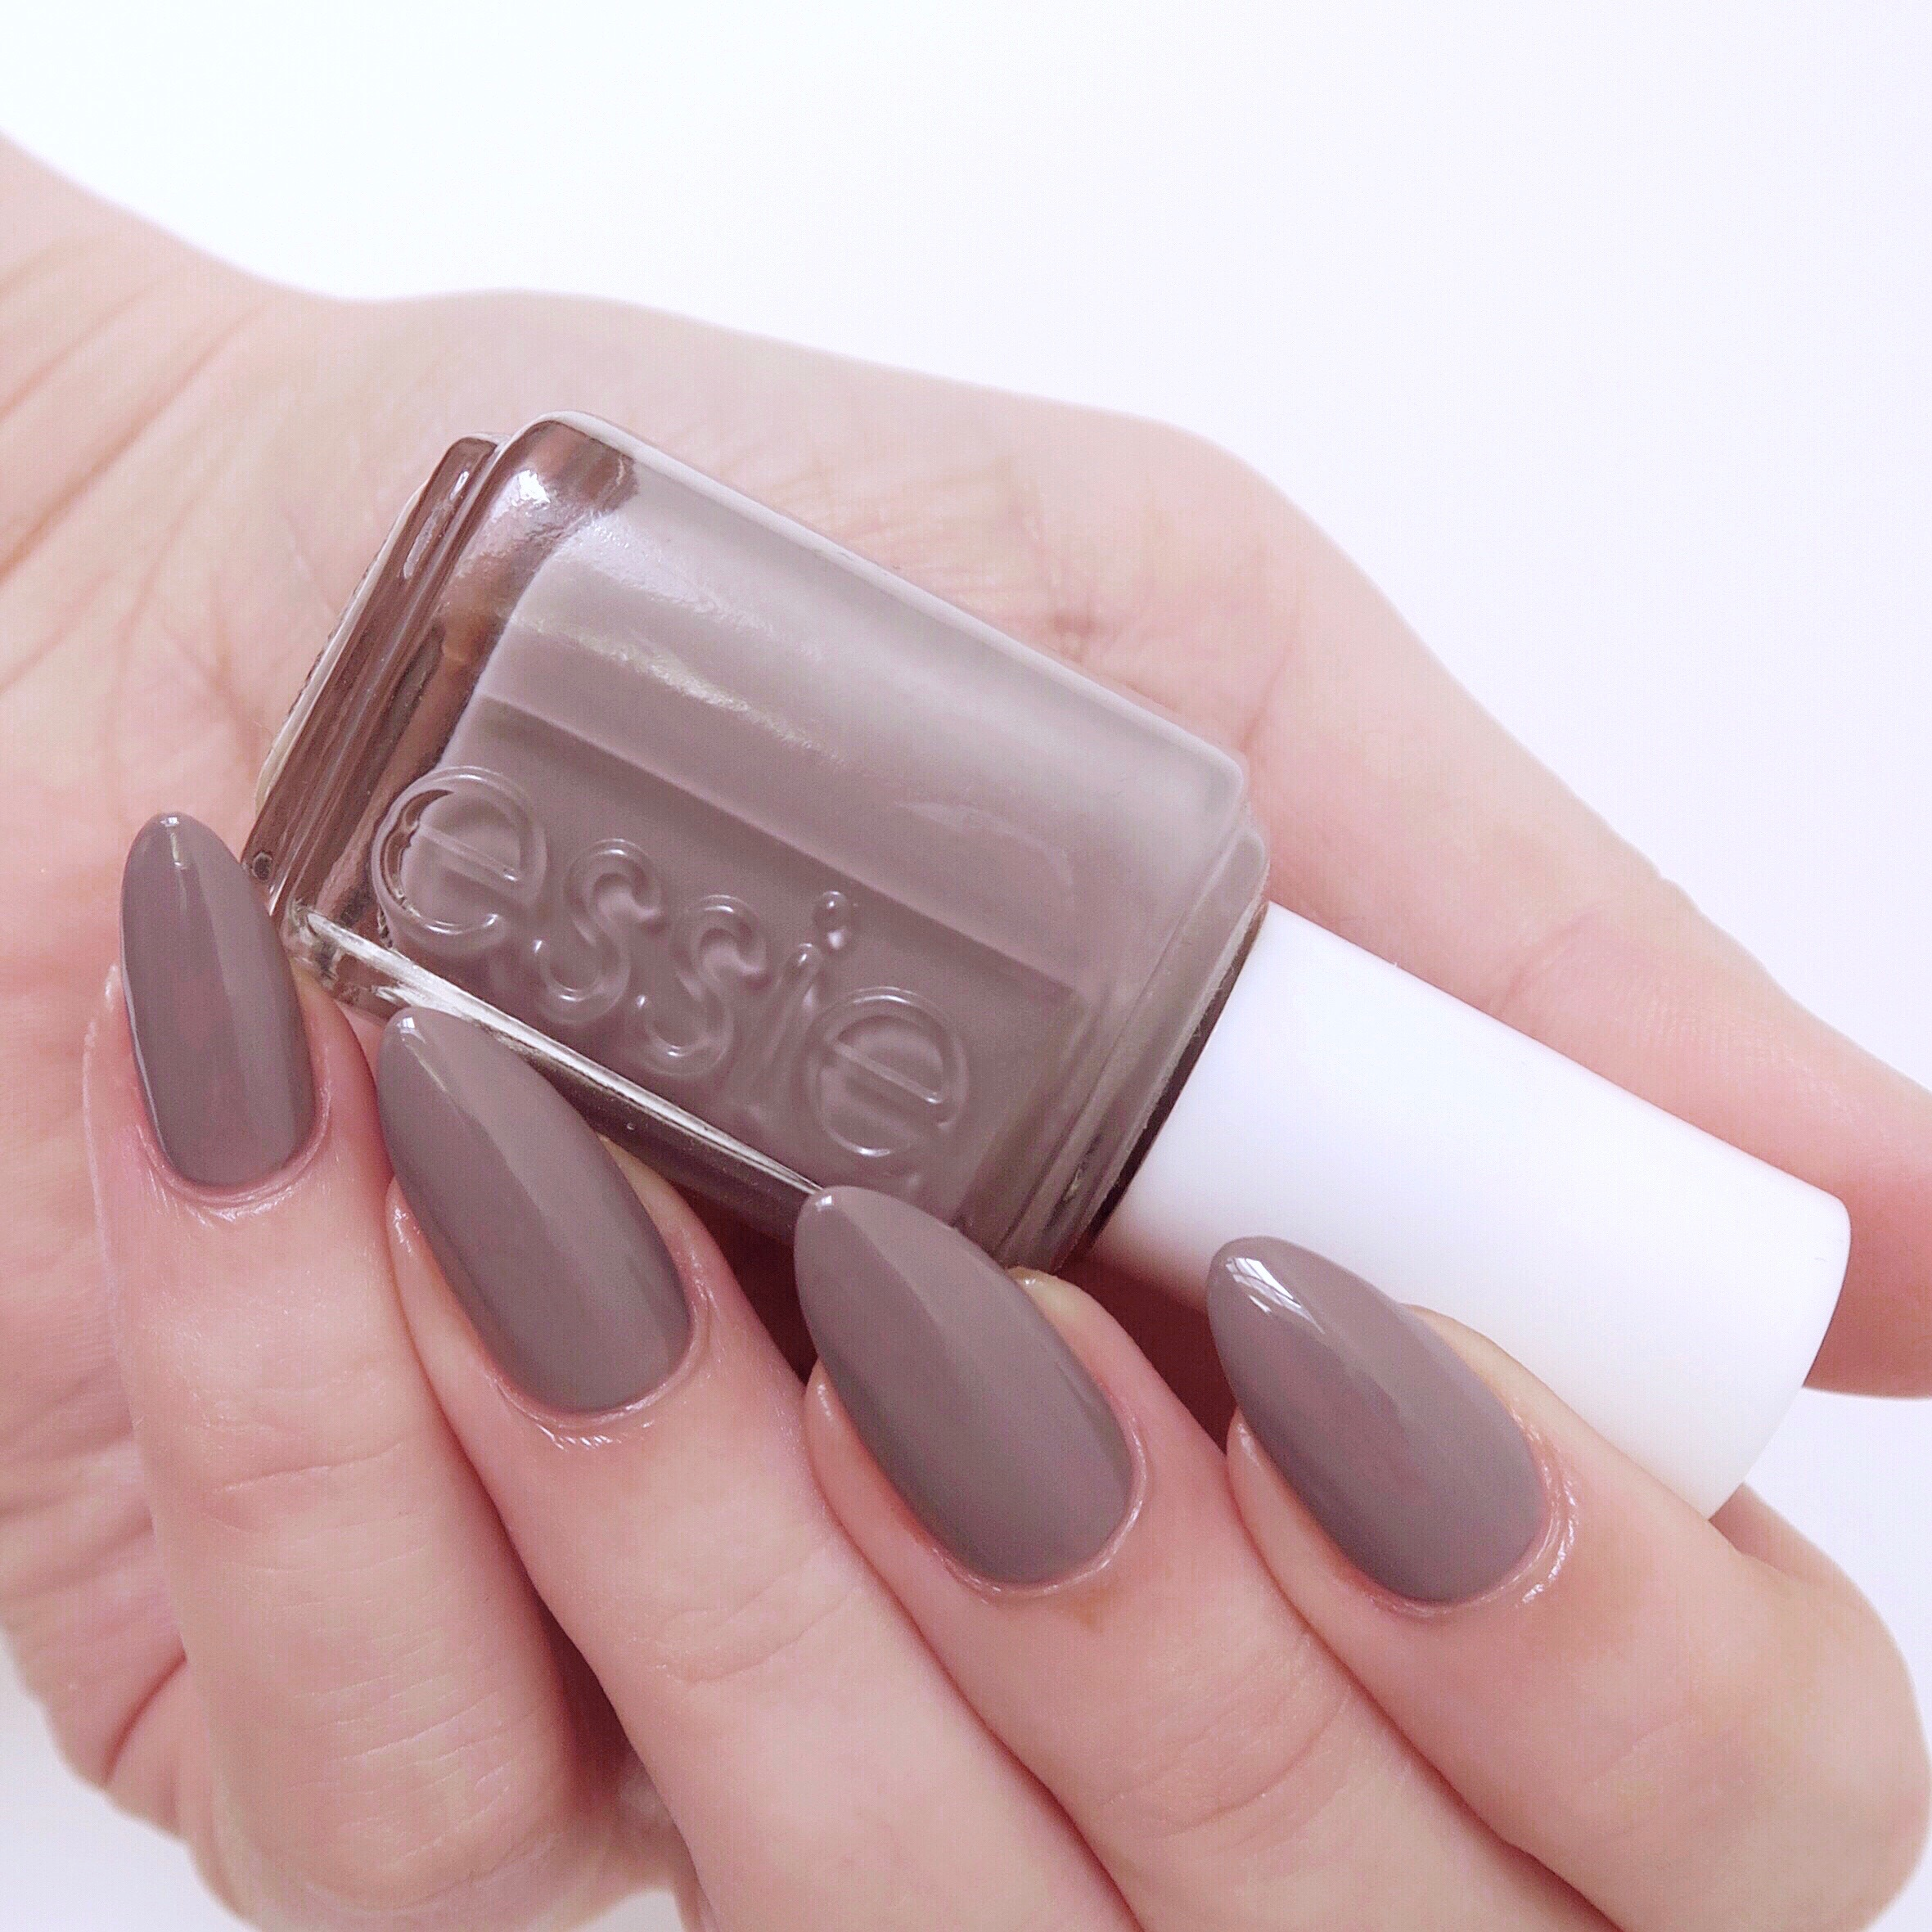 My favourite winter polishes - essie 'chinchilly', a soft grey-beige (greige!) that is so chic and flattering